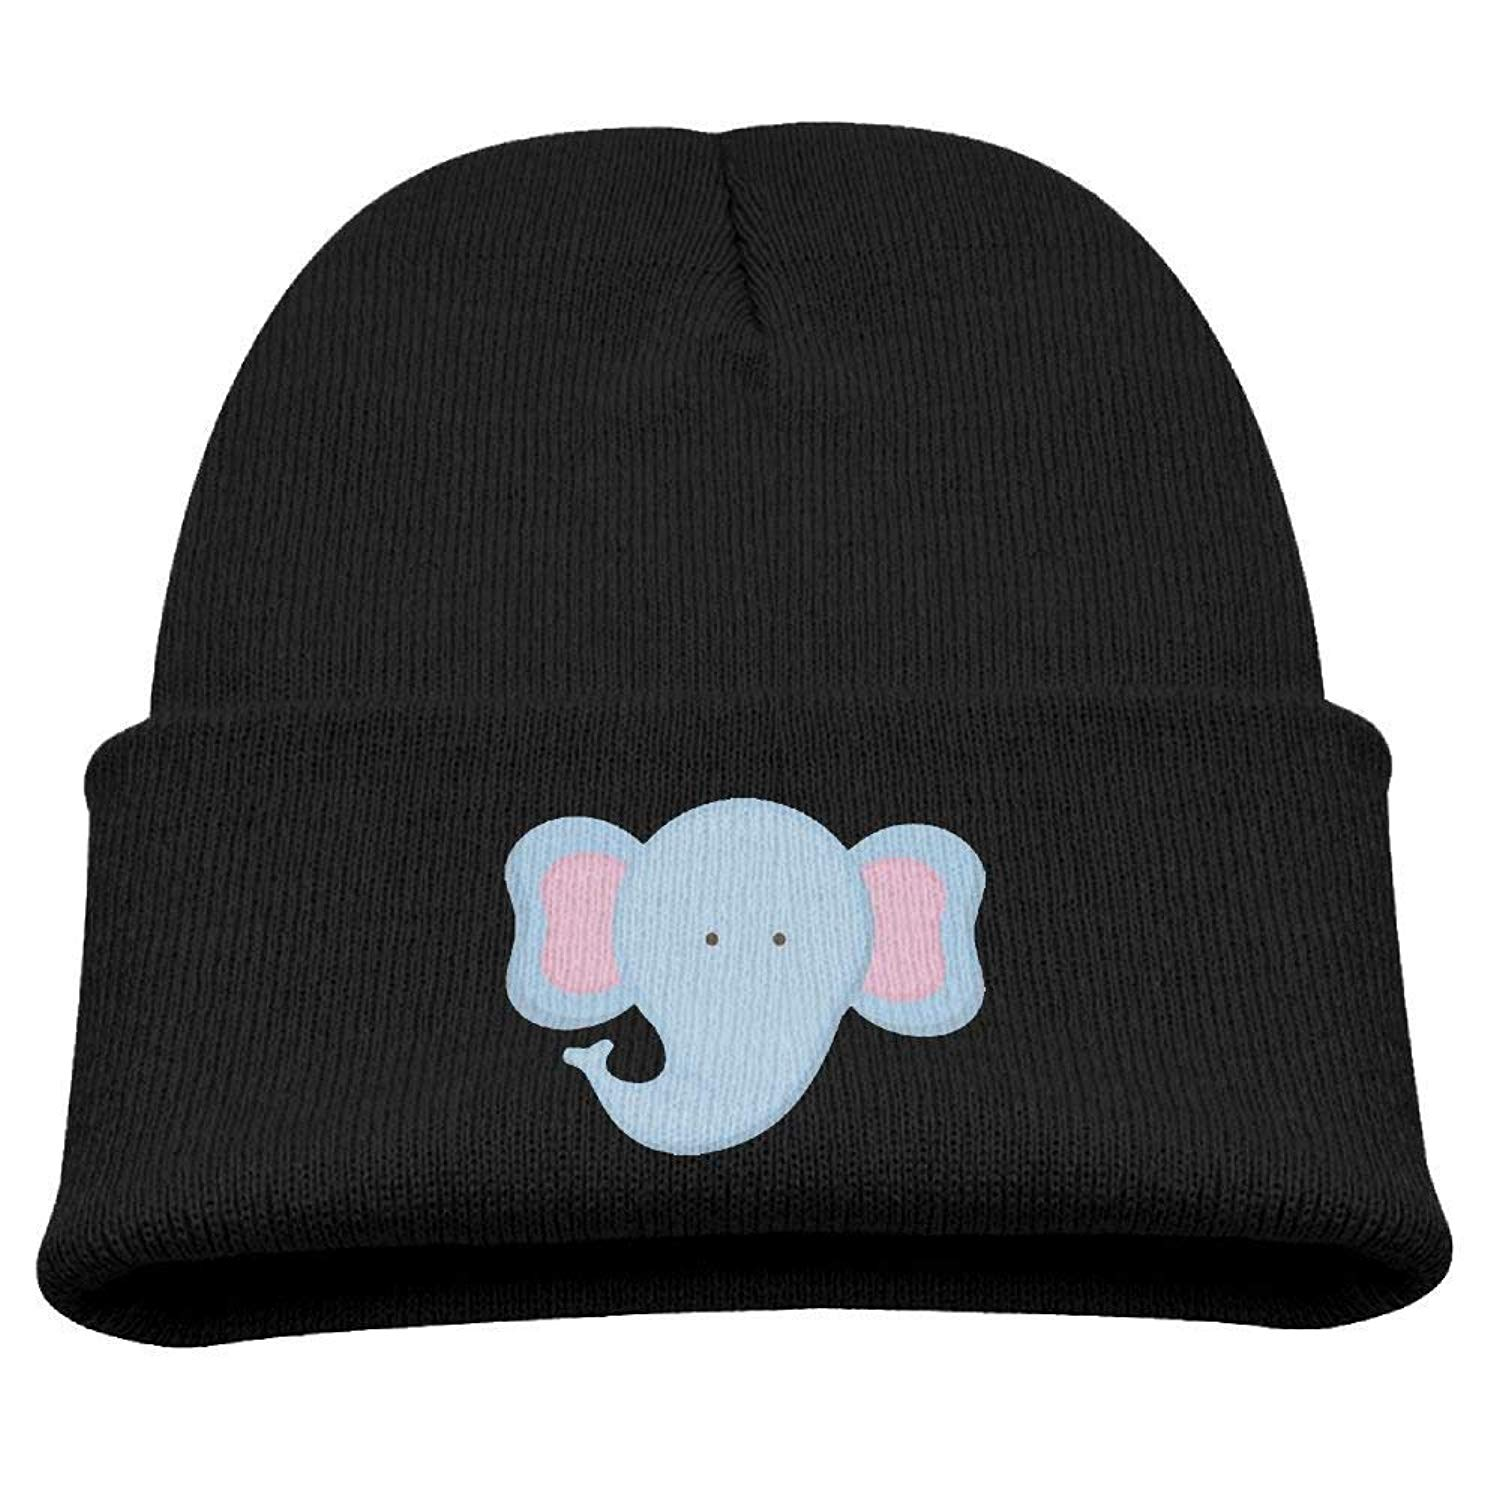 08b34be5c00 Get Quotations · Cute Elephant Kid s Hats Winter Funny Soft Knit Beanie Cap